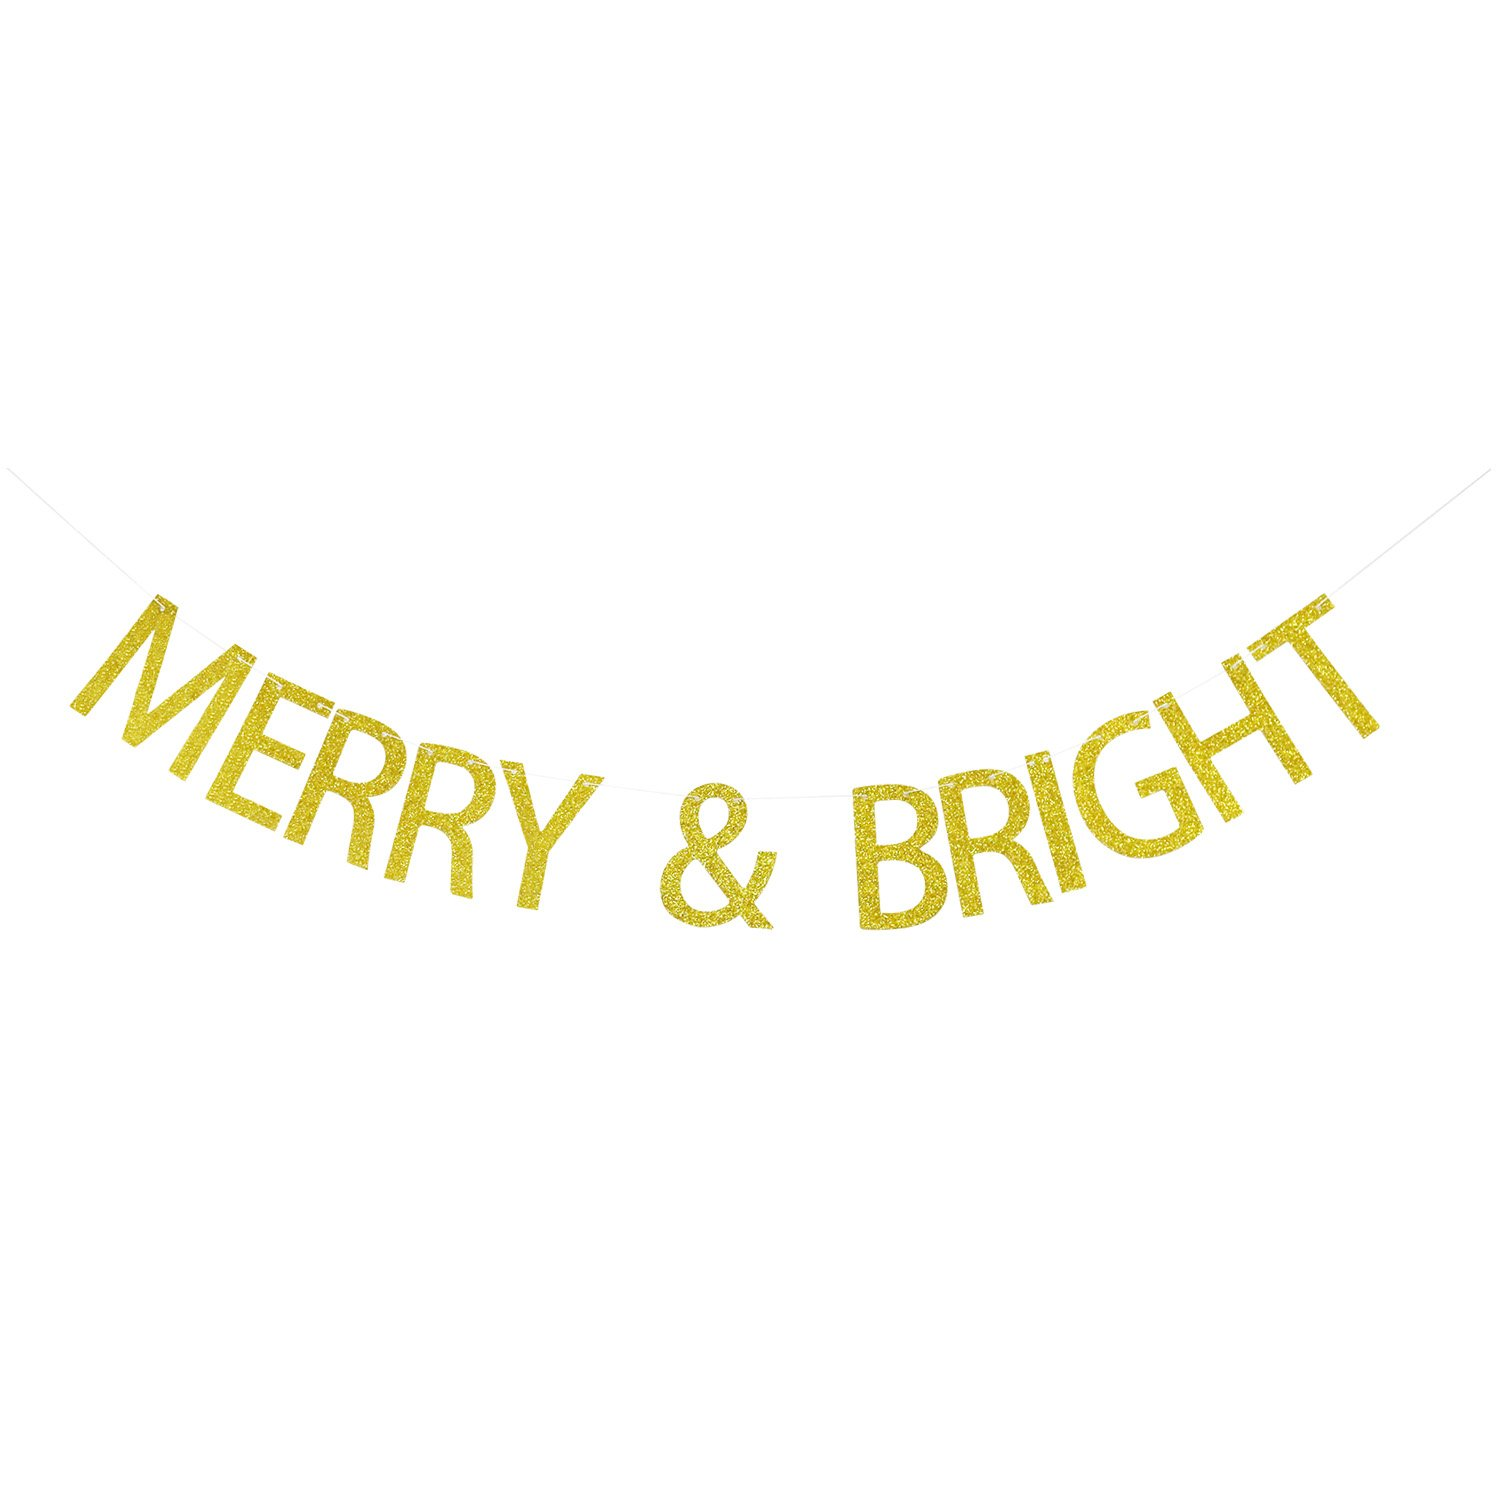 MERRY & BRIGHT Gold Glitter Banner | Holiday Decorations | Christmas Banner Garland | Christmas Party Decor | Christmas Photo Prop | Home Mantle Decor